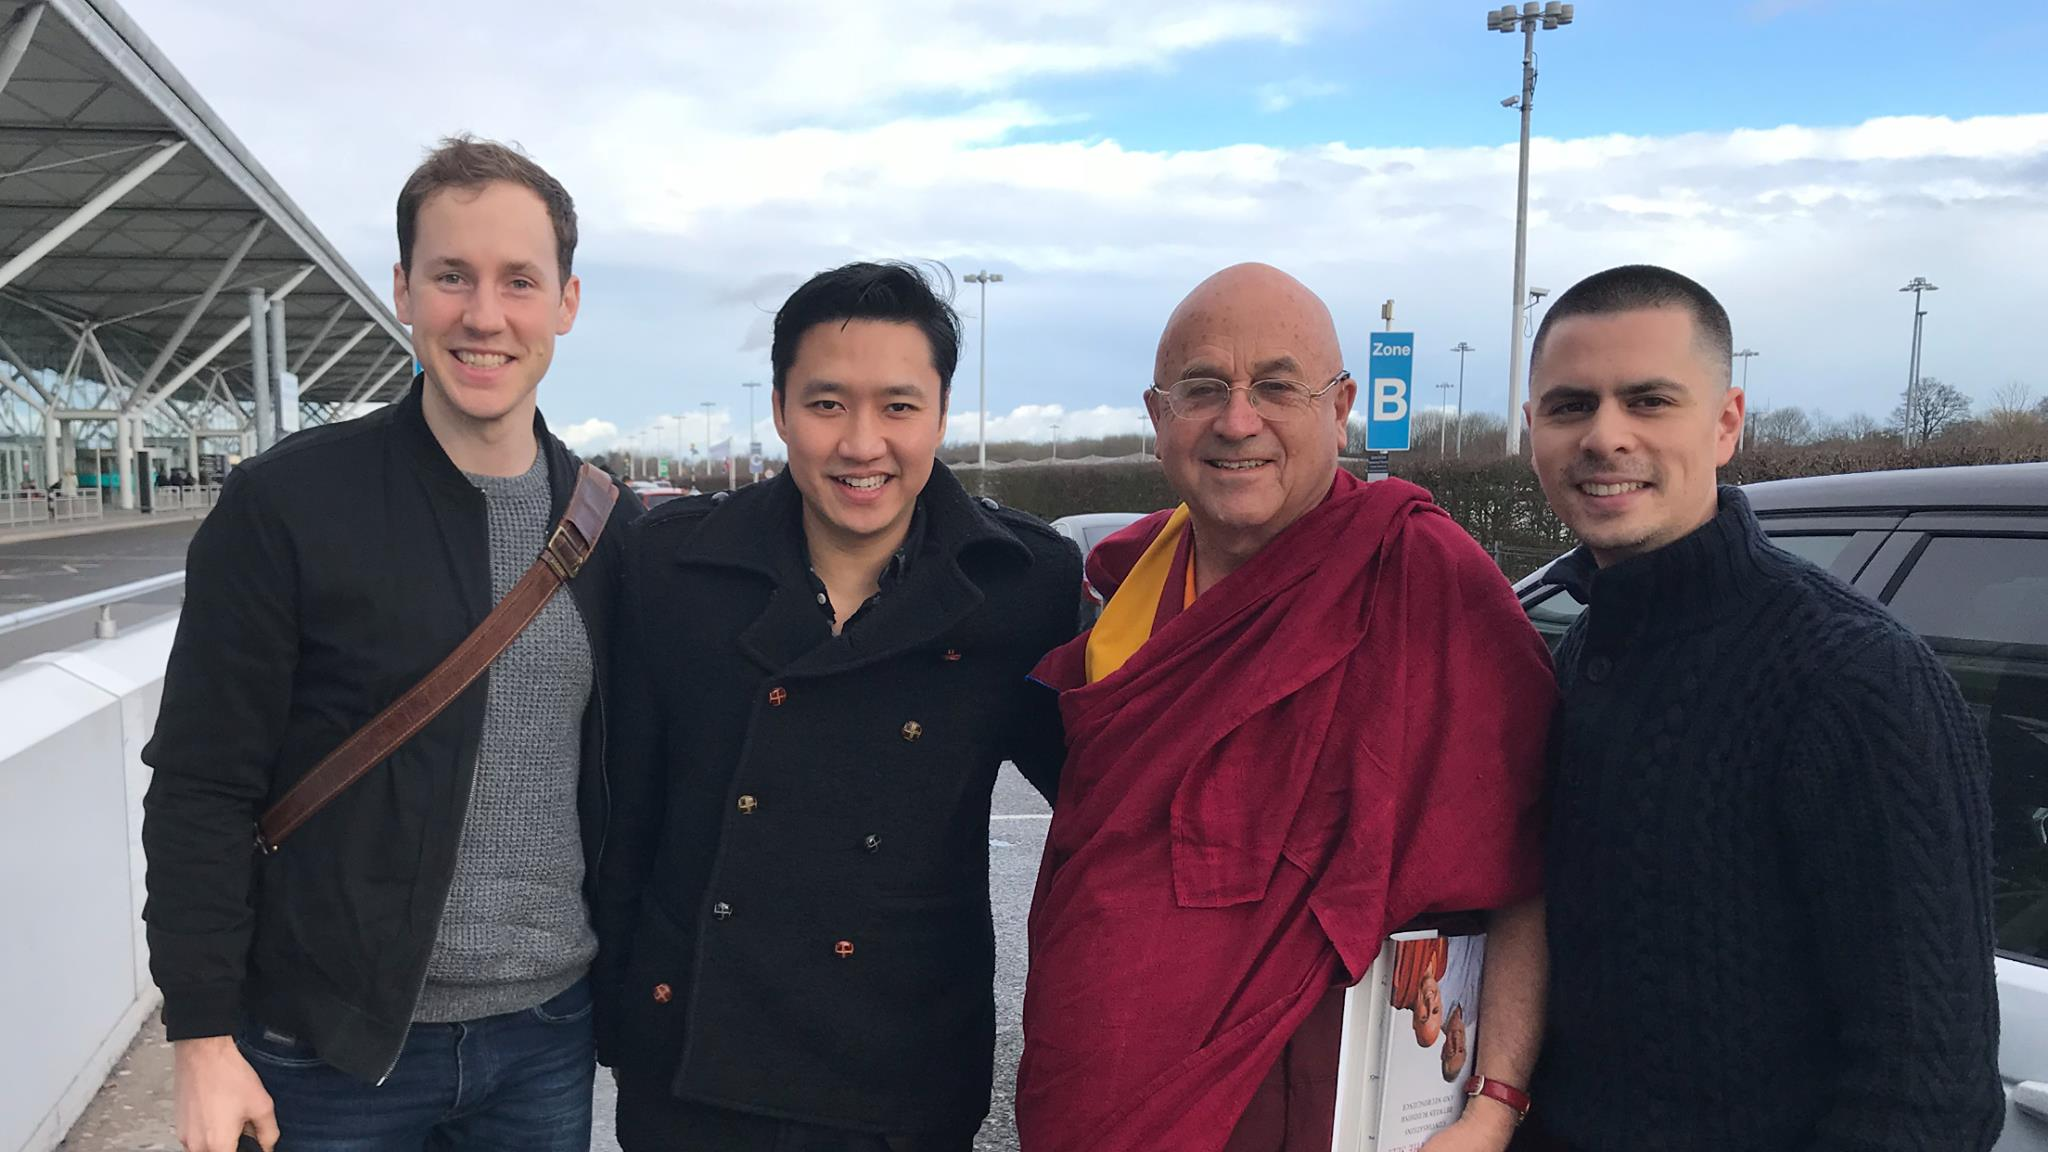 Podcast 63: Carpool podcast with Matthieu Ricard